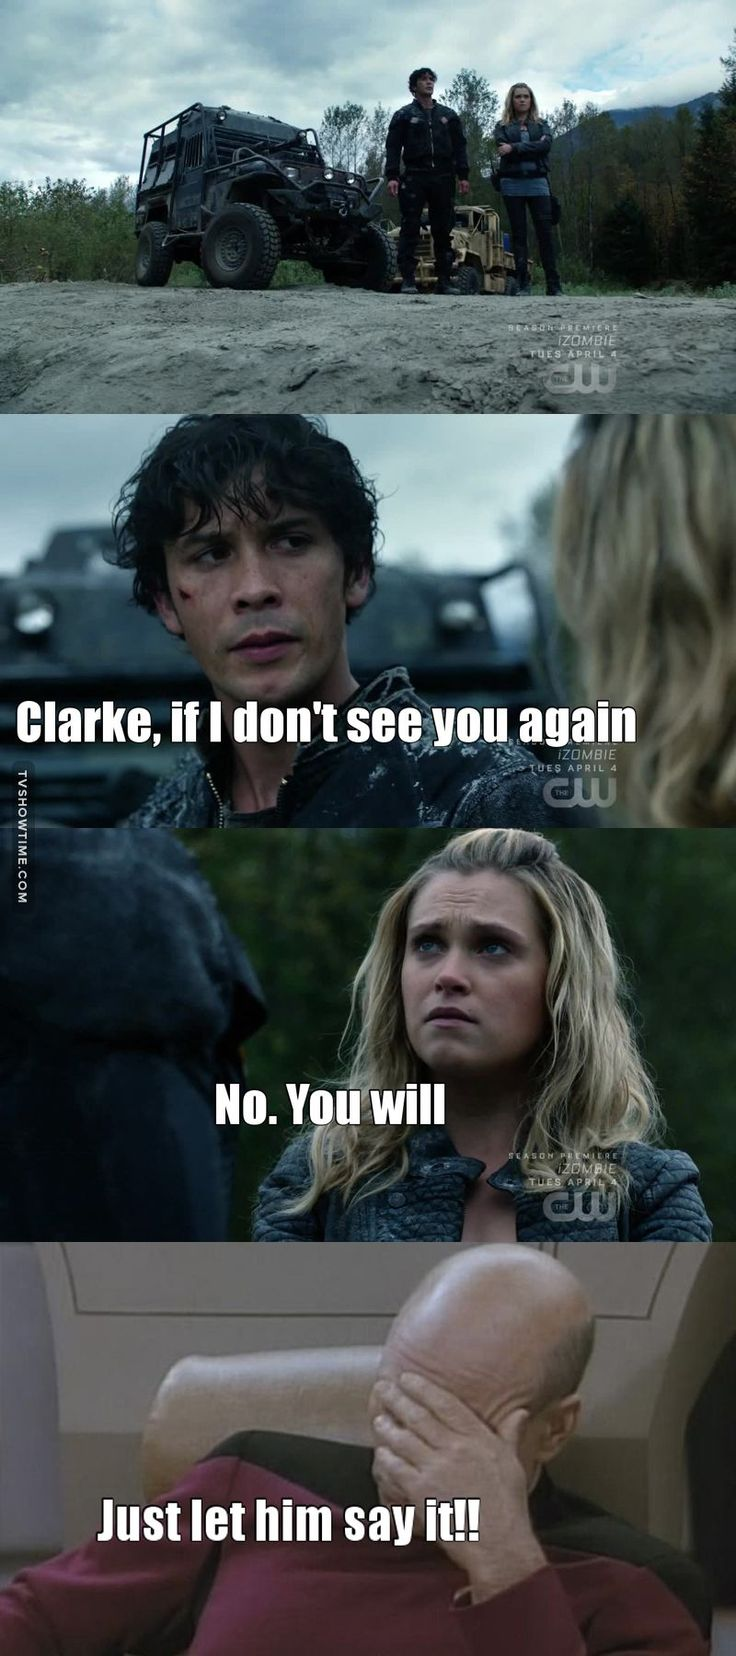 YOU JUST HAD TO KEEP YOUR MOUTH SHUT FOR A FEW MORE SECONDS!!!!!! WAS IT REALLY THAT HARD?!?!? BELLARKE ALMOST HAPPENED!!! SCREW YOU CLARKE!!!!!!